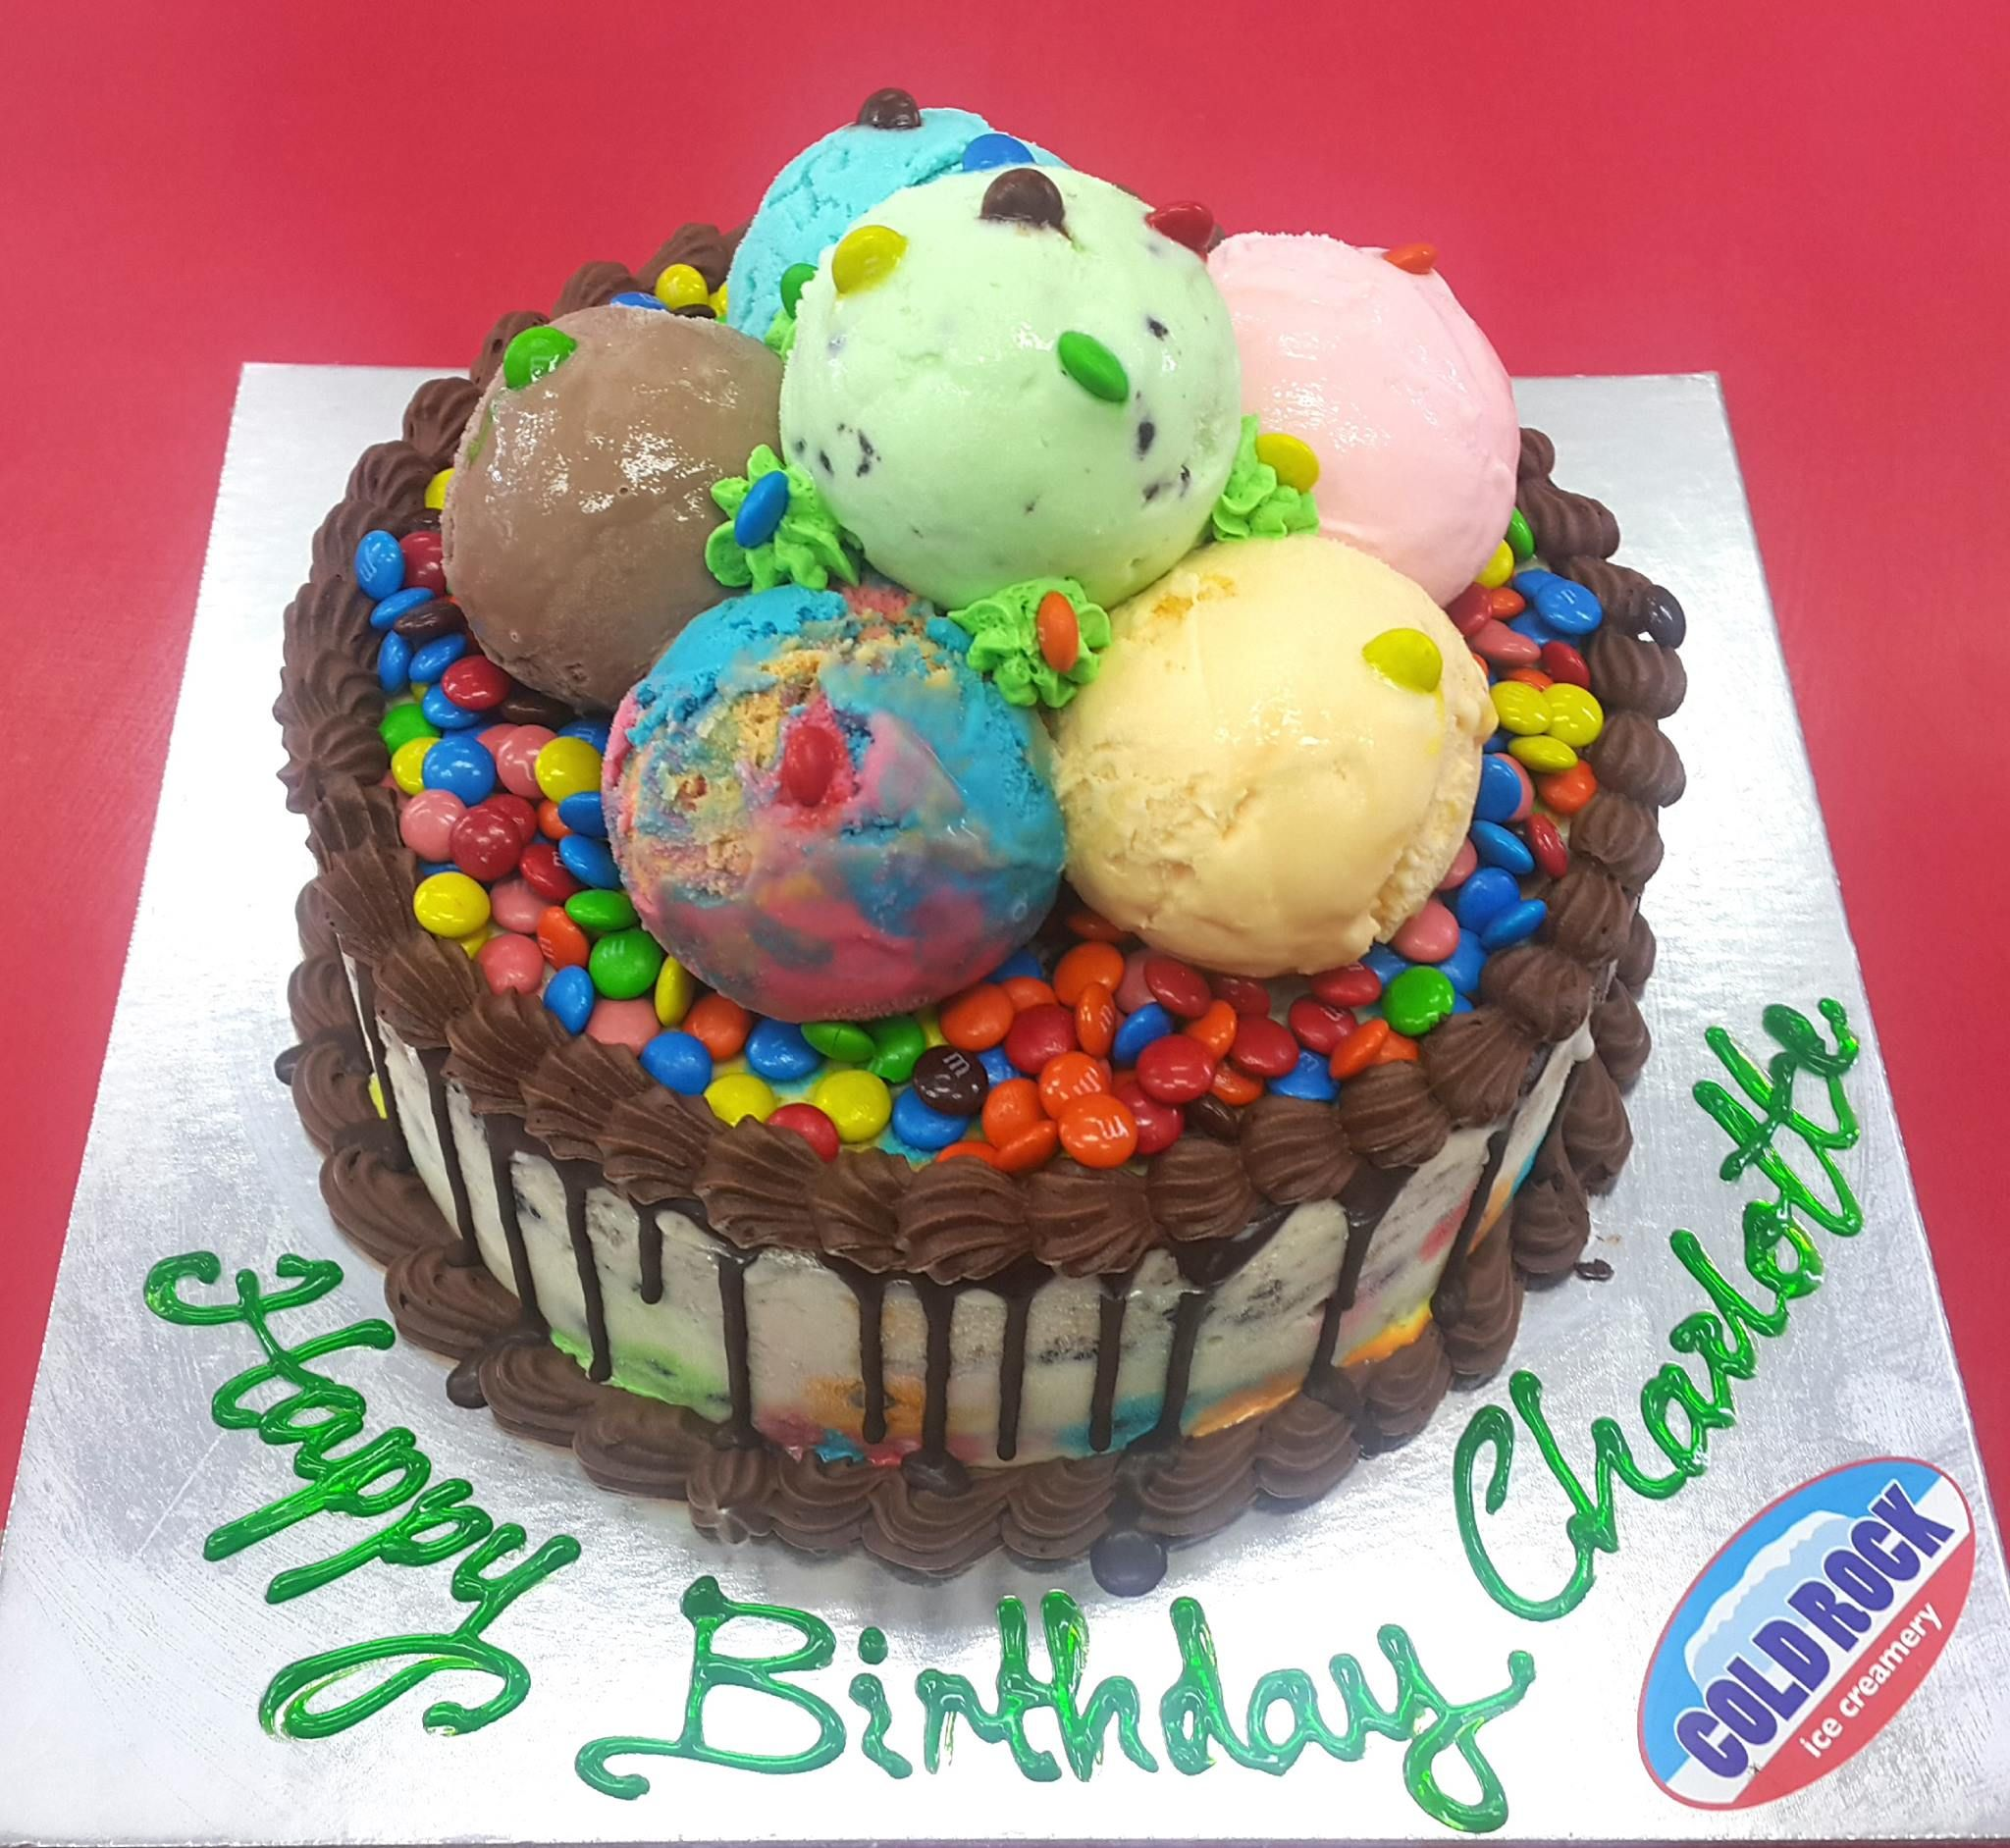 Cold Rock Ice Cream Cakes Made Fresh In Store Daily Adesa